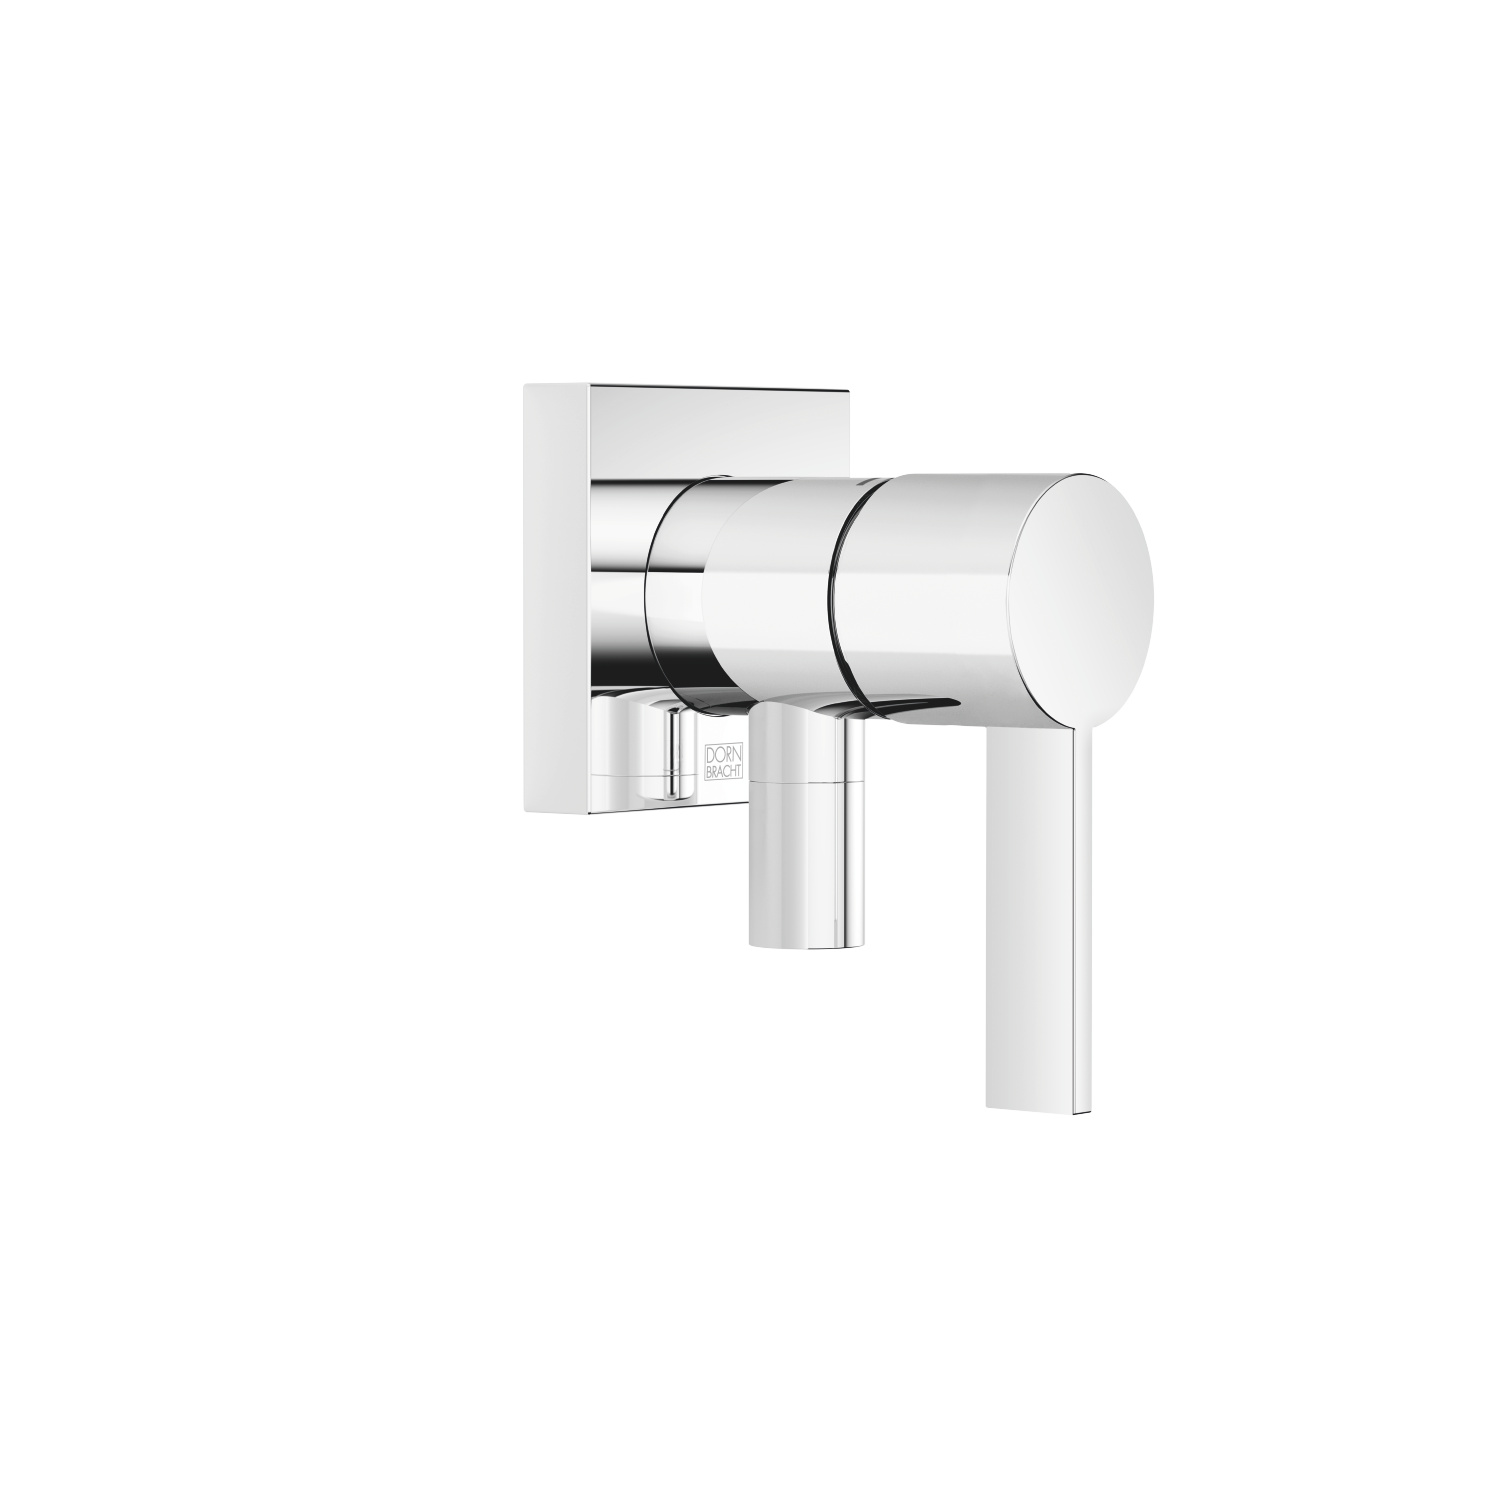 Concealed single-lever mixer with cover plate with integrated shower connection - polished chrome